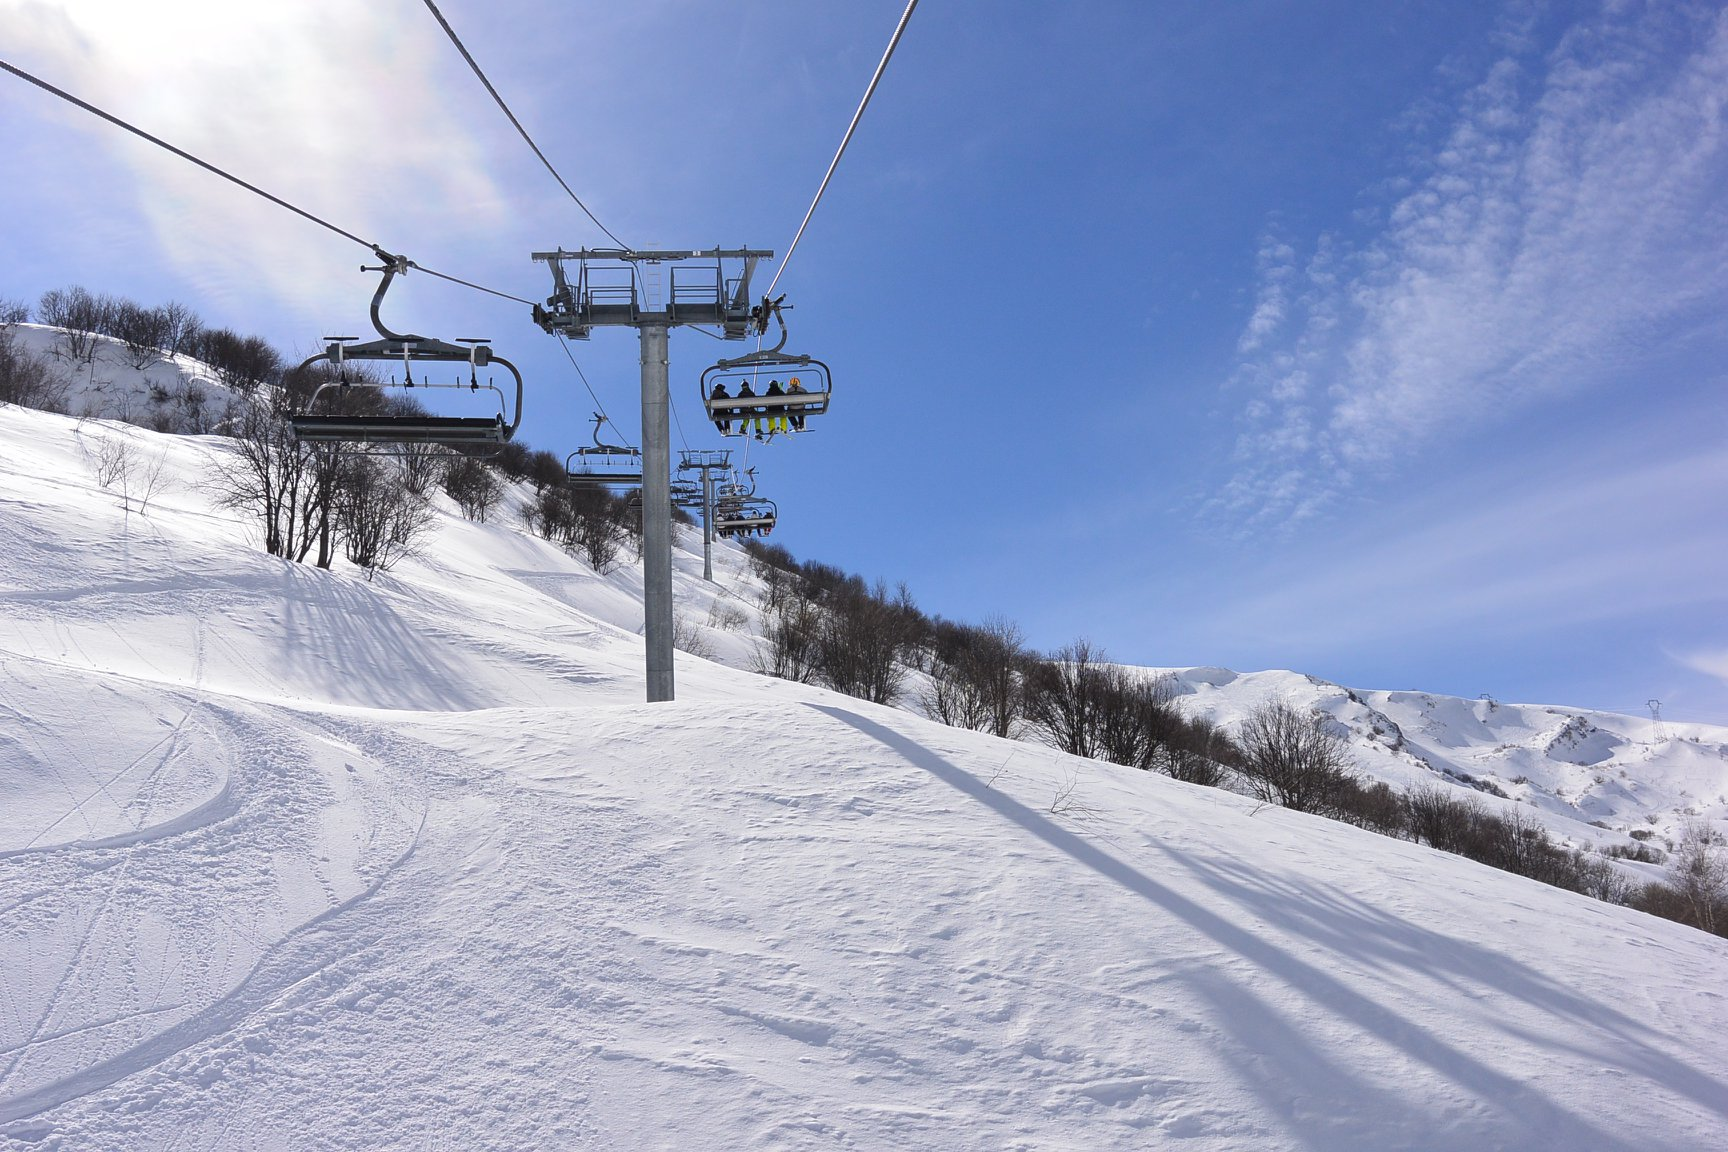 Valmorel in March